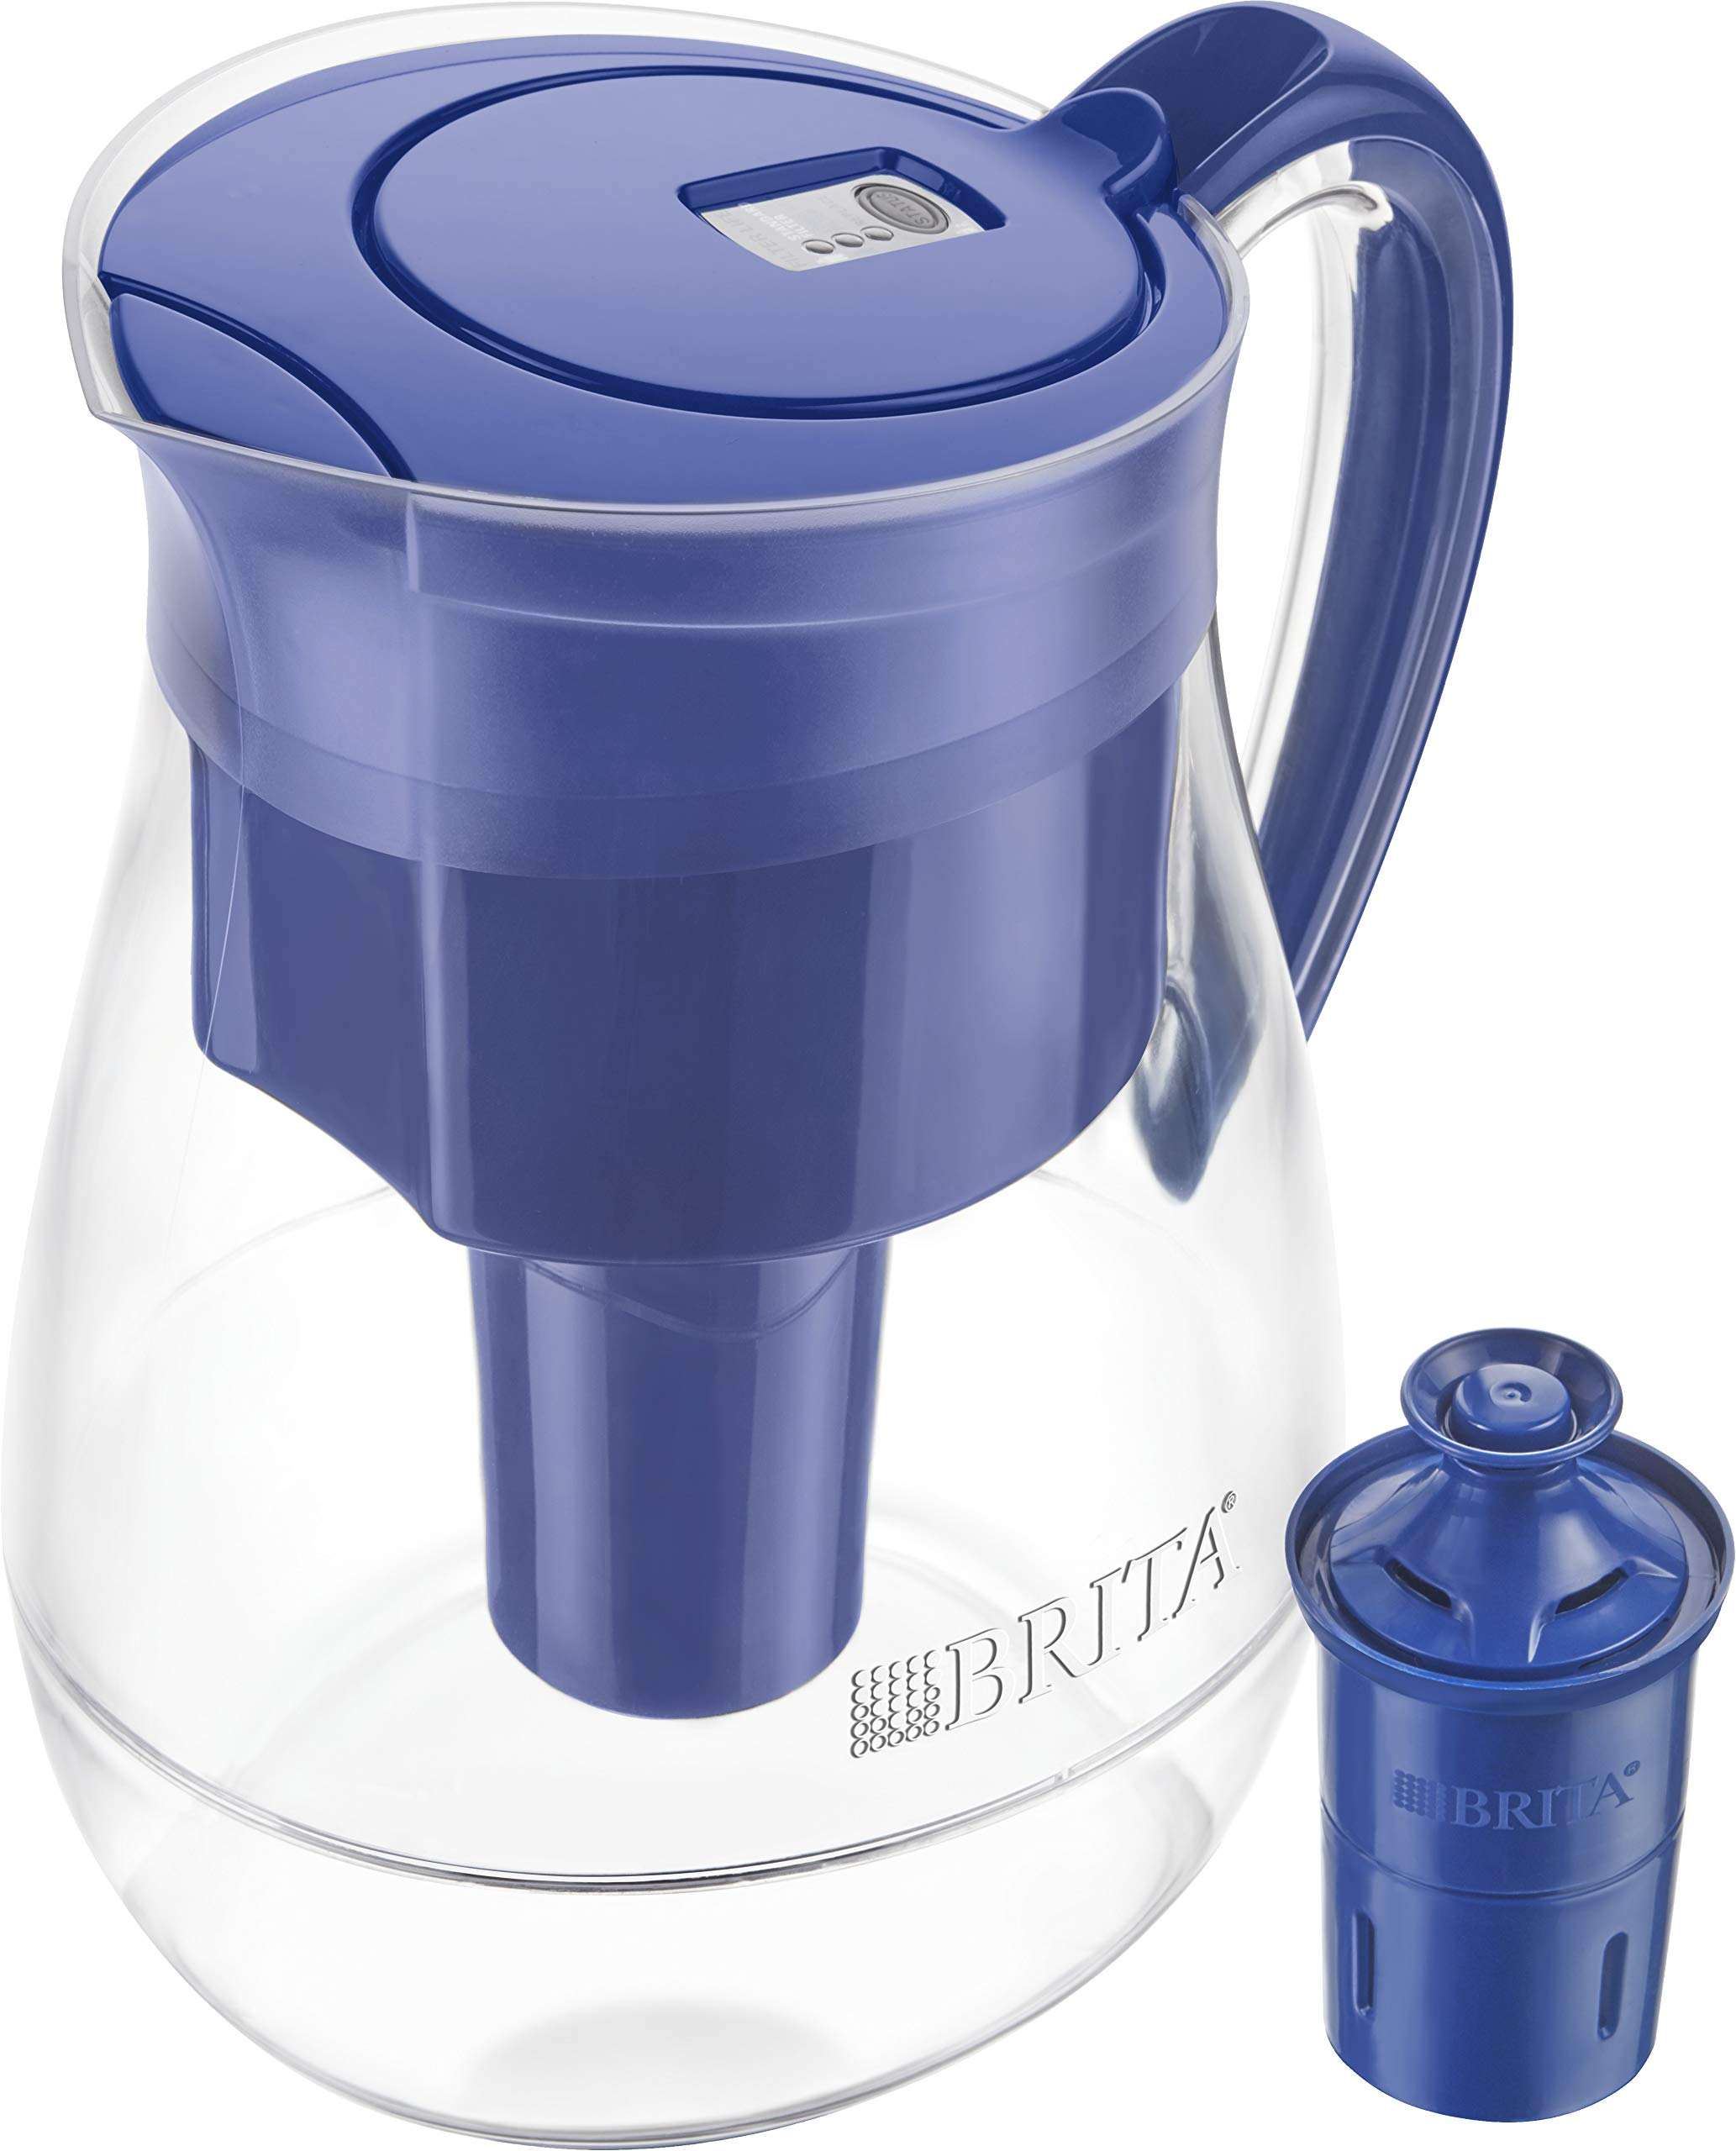 Brita Longlast Monterey Water Filter Pitcher, Cloud Limoges, Large 10 Cup, 1 Count